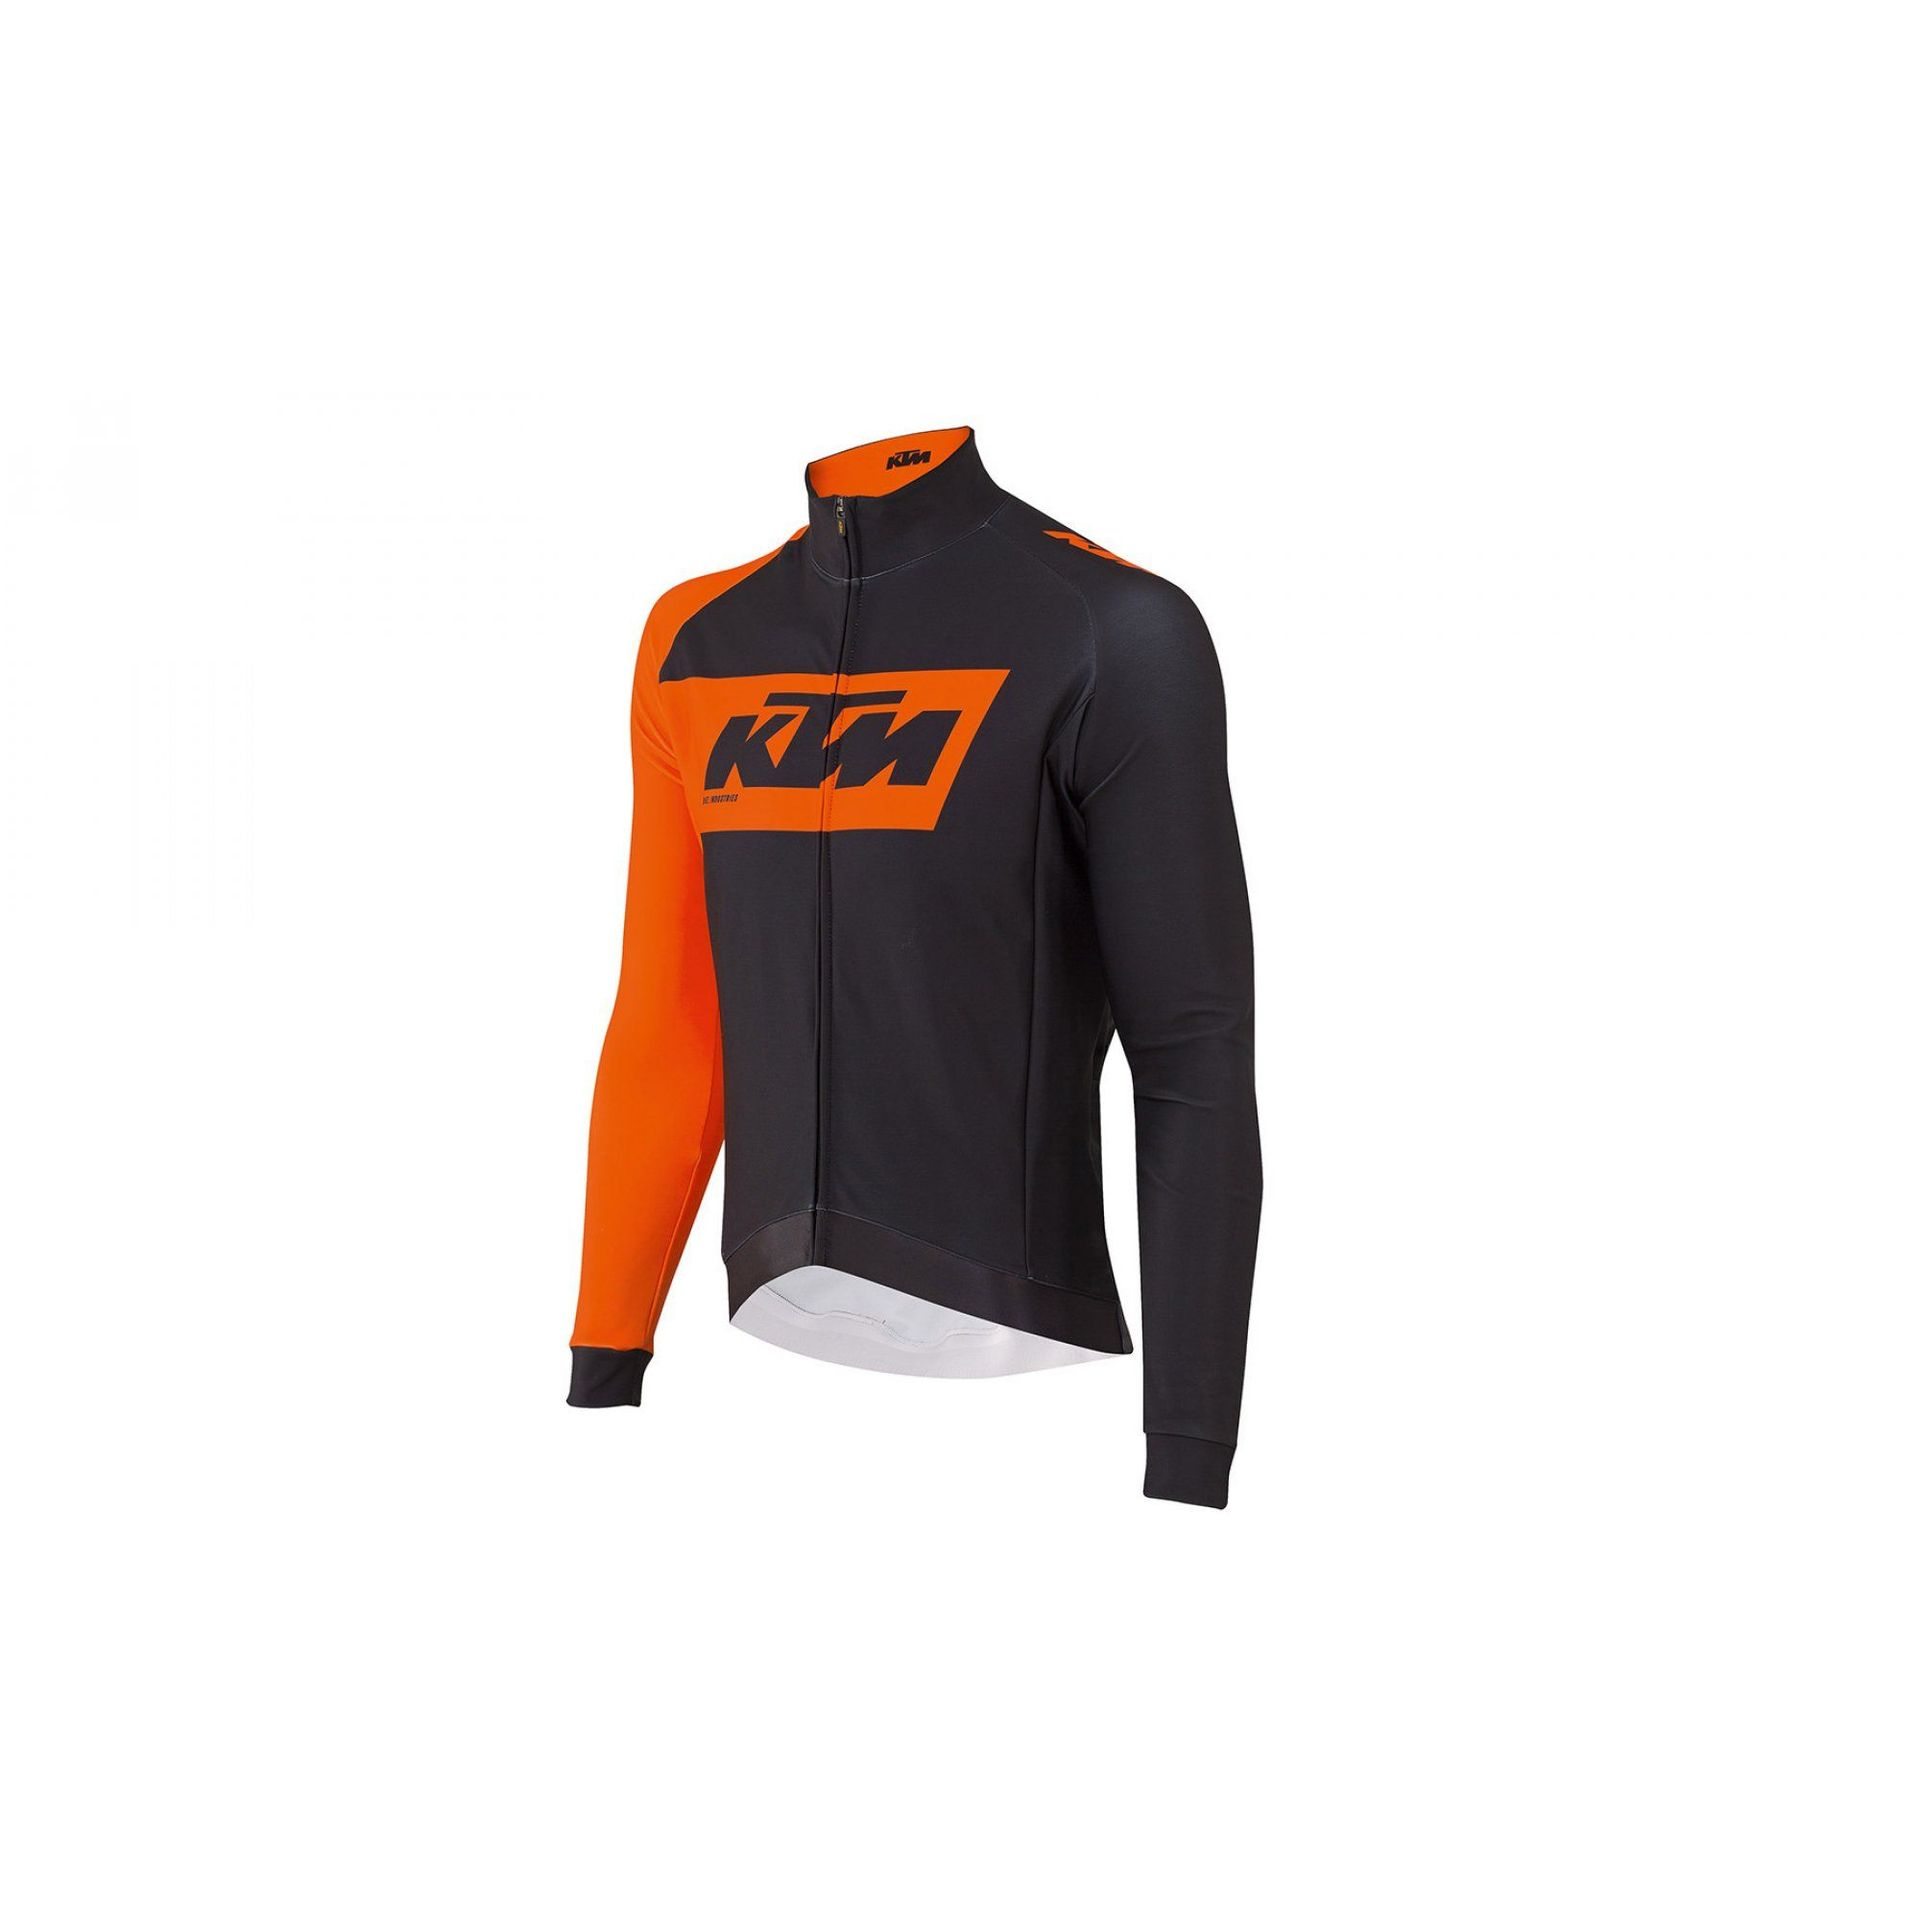 KOSZULKA ROWEROWA KTM FACTORY TEAM RACE WINTER BLACK|ORANGE